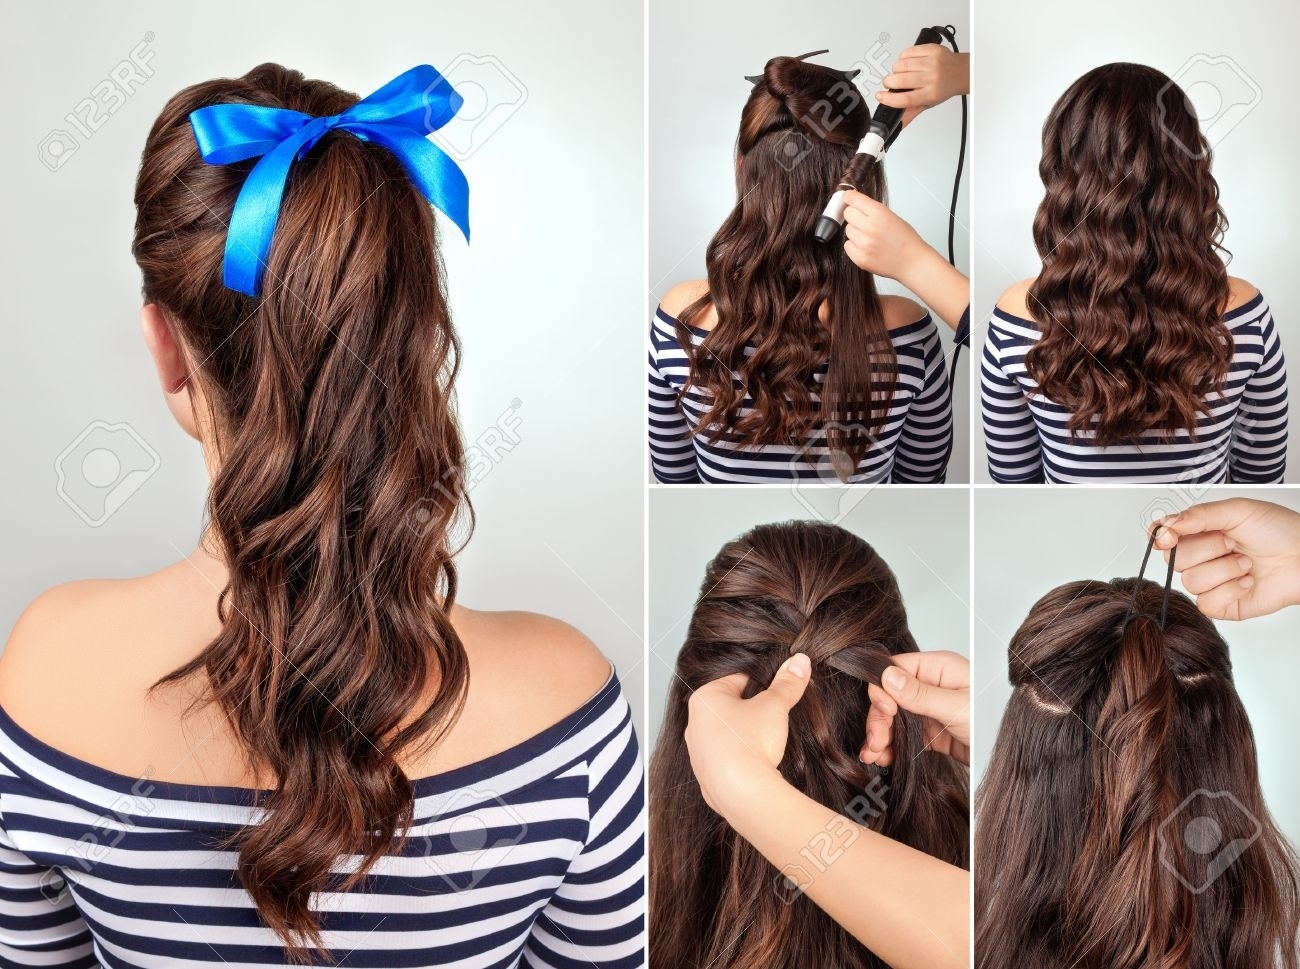 Simple Hairstyle Pony Tail On Curly Hair Tutorial. Hairstyle.. Stock inside Curly Hairstyle Easy To Manage